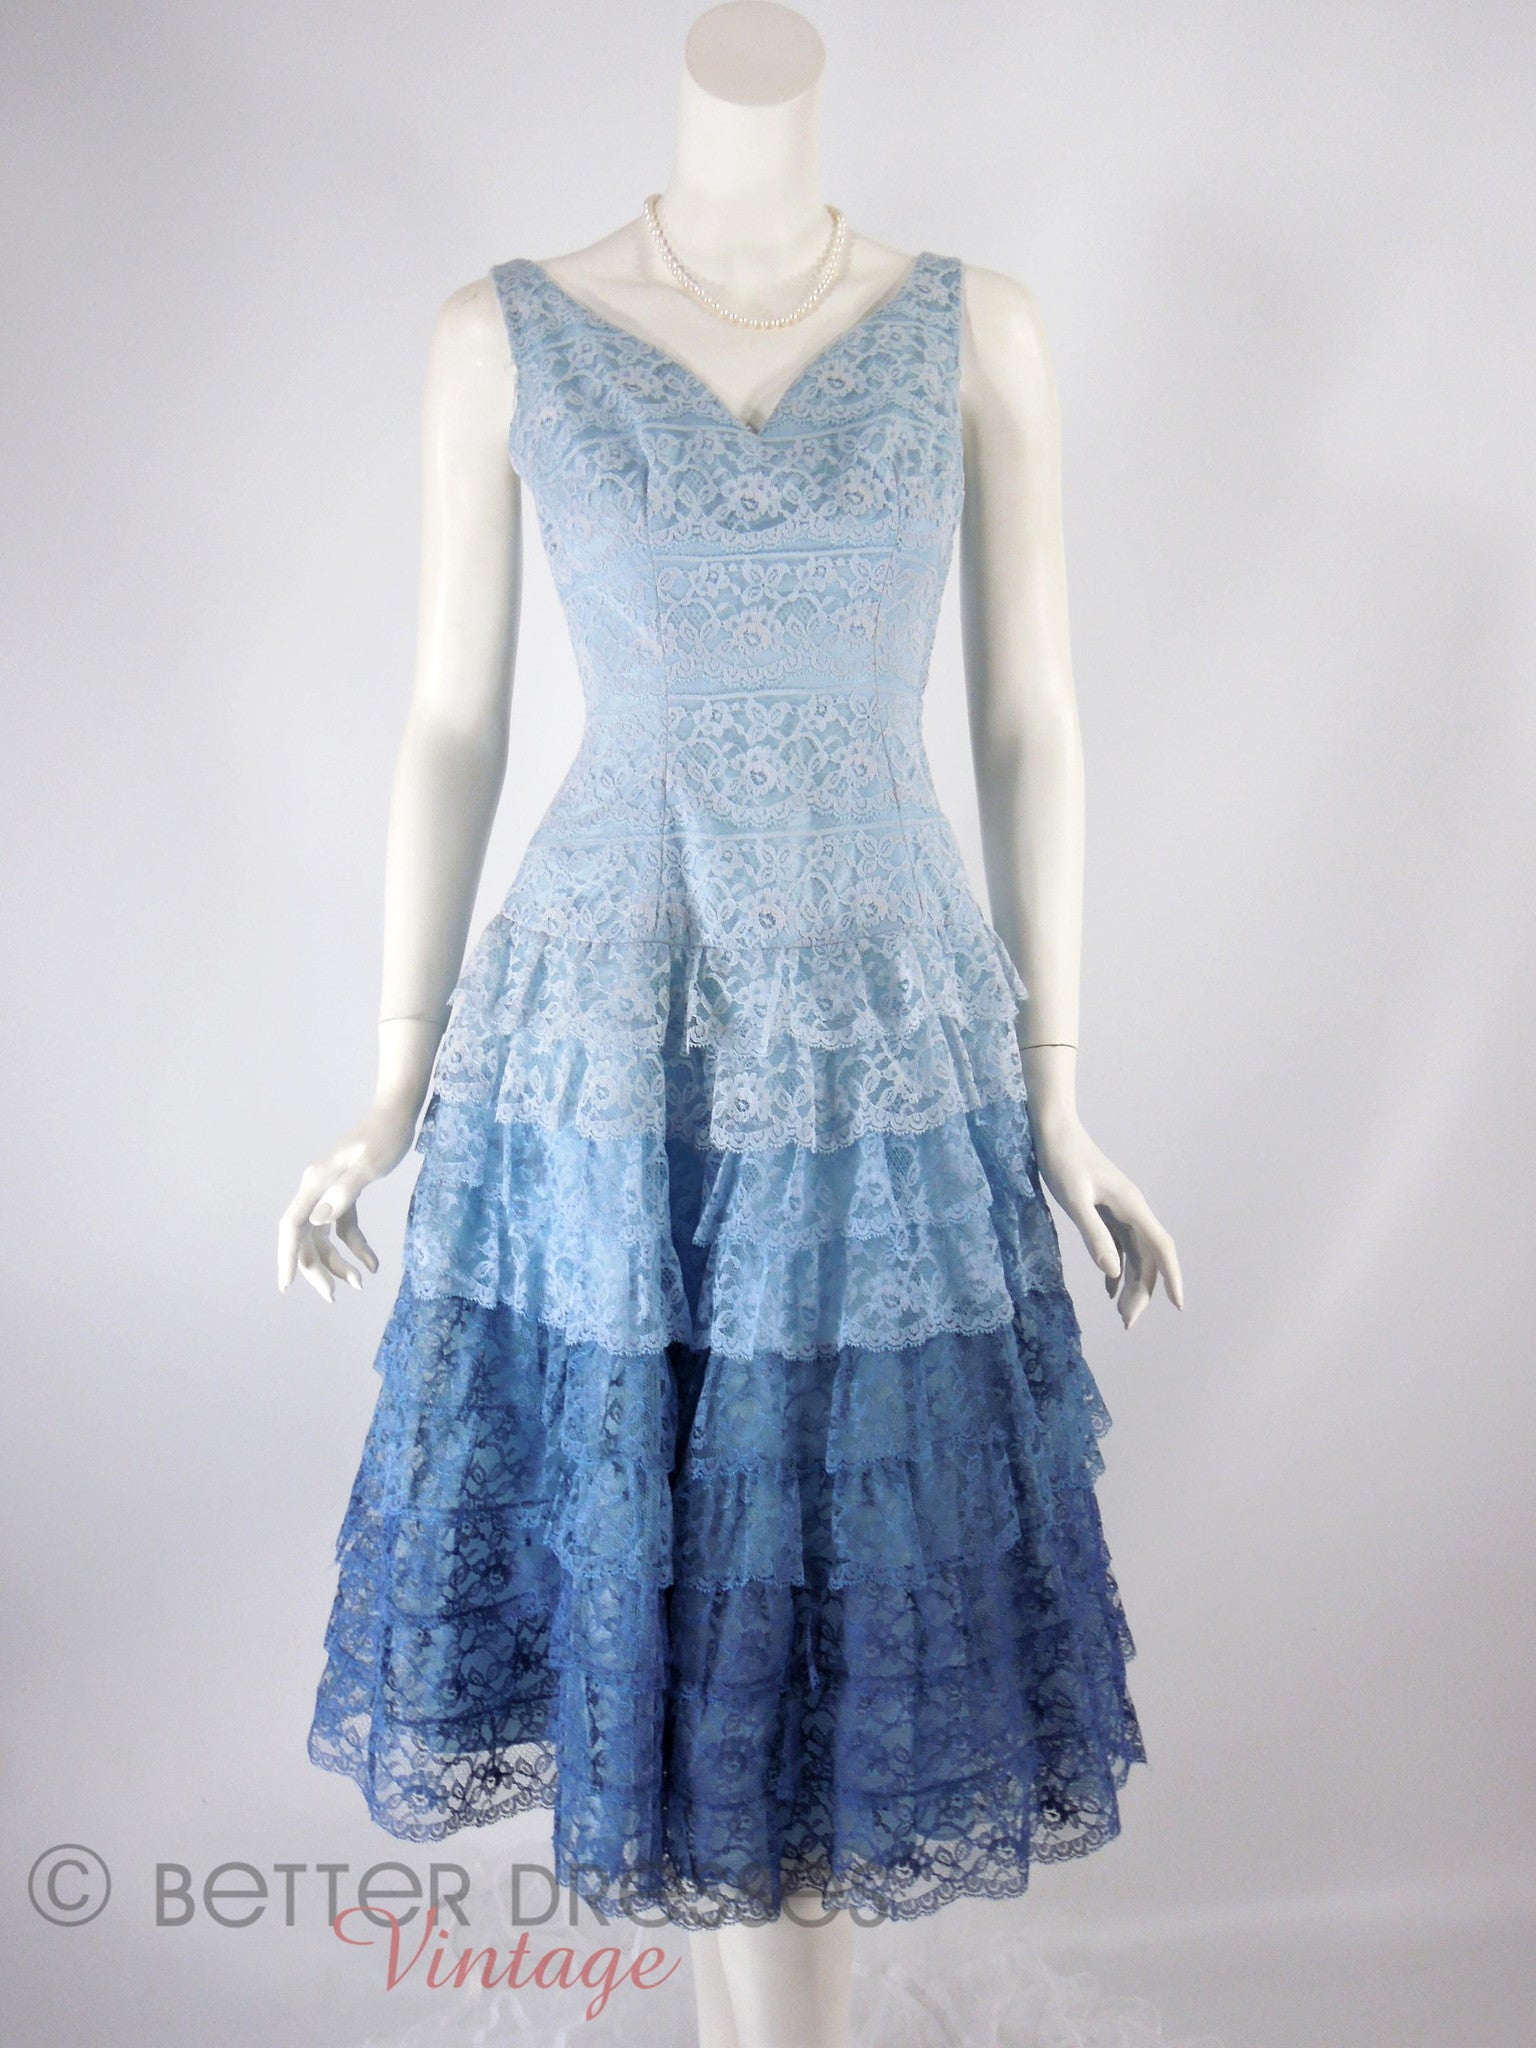 Old Fashioned Blue Lace Party Dress Picture Collection - All Wedding ...